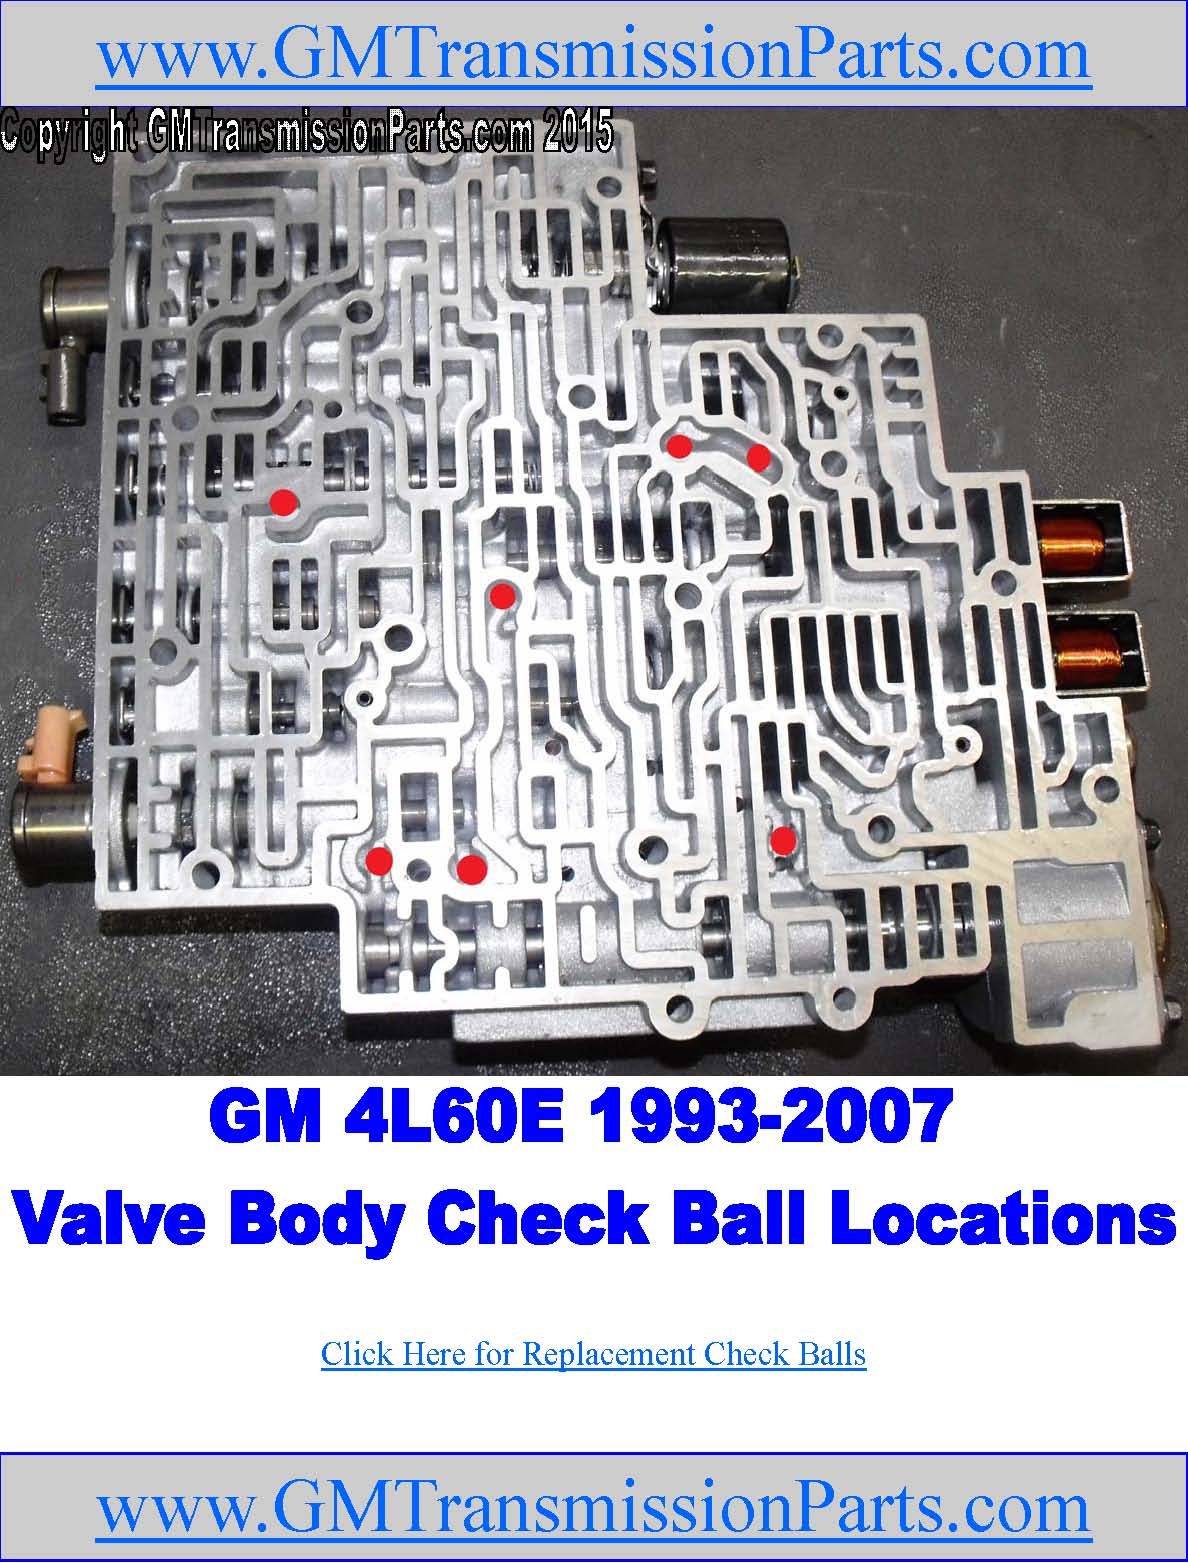 Gm 4l60e transmission valve body check ball location picture 4l60e valve body check ball locations pooptronica